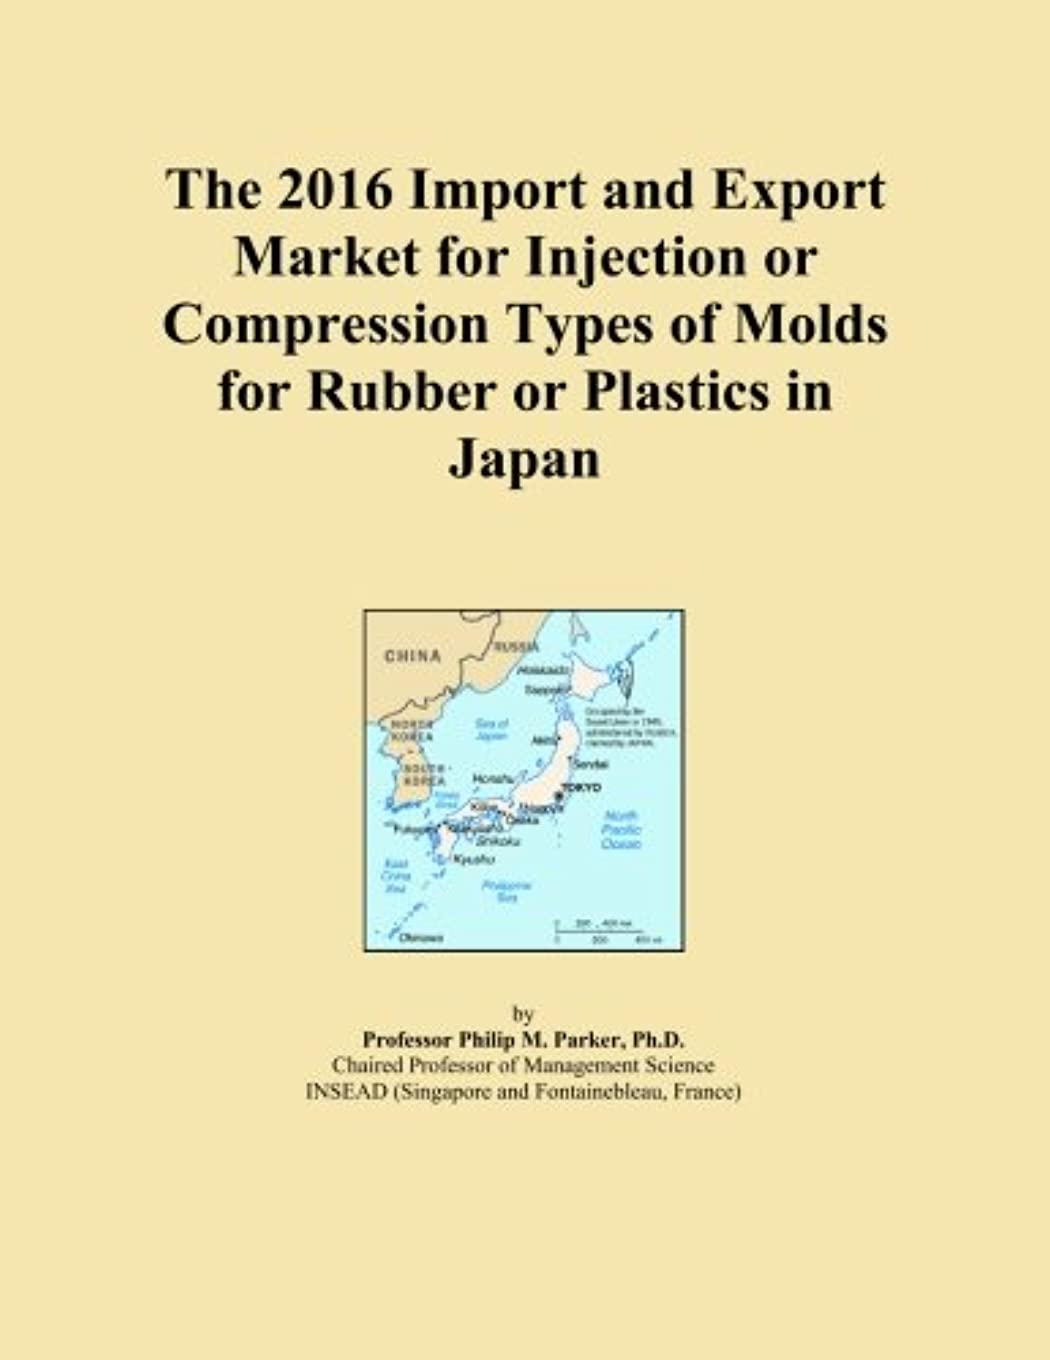 慈悲深いメンバー告白The 2016 Import and Export Market for Injection or Compression Types of Molds for Rubber or Plastics in Japan